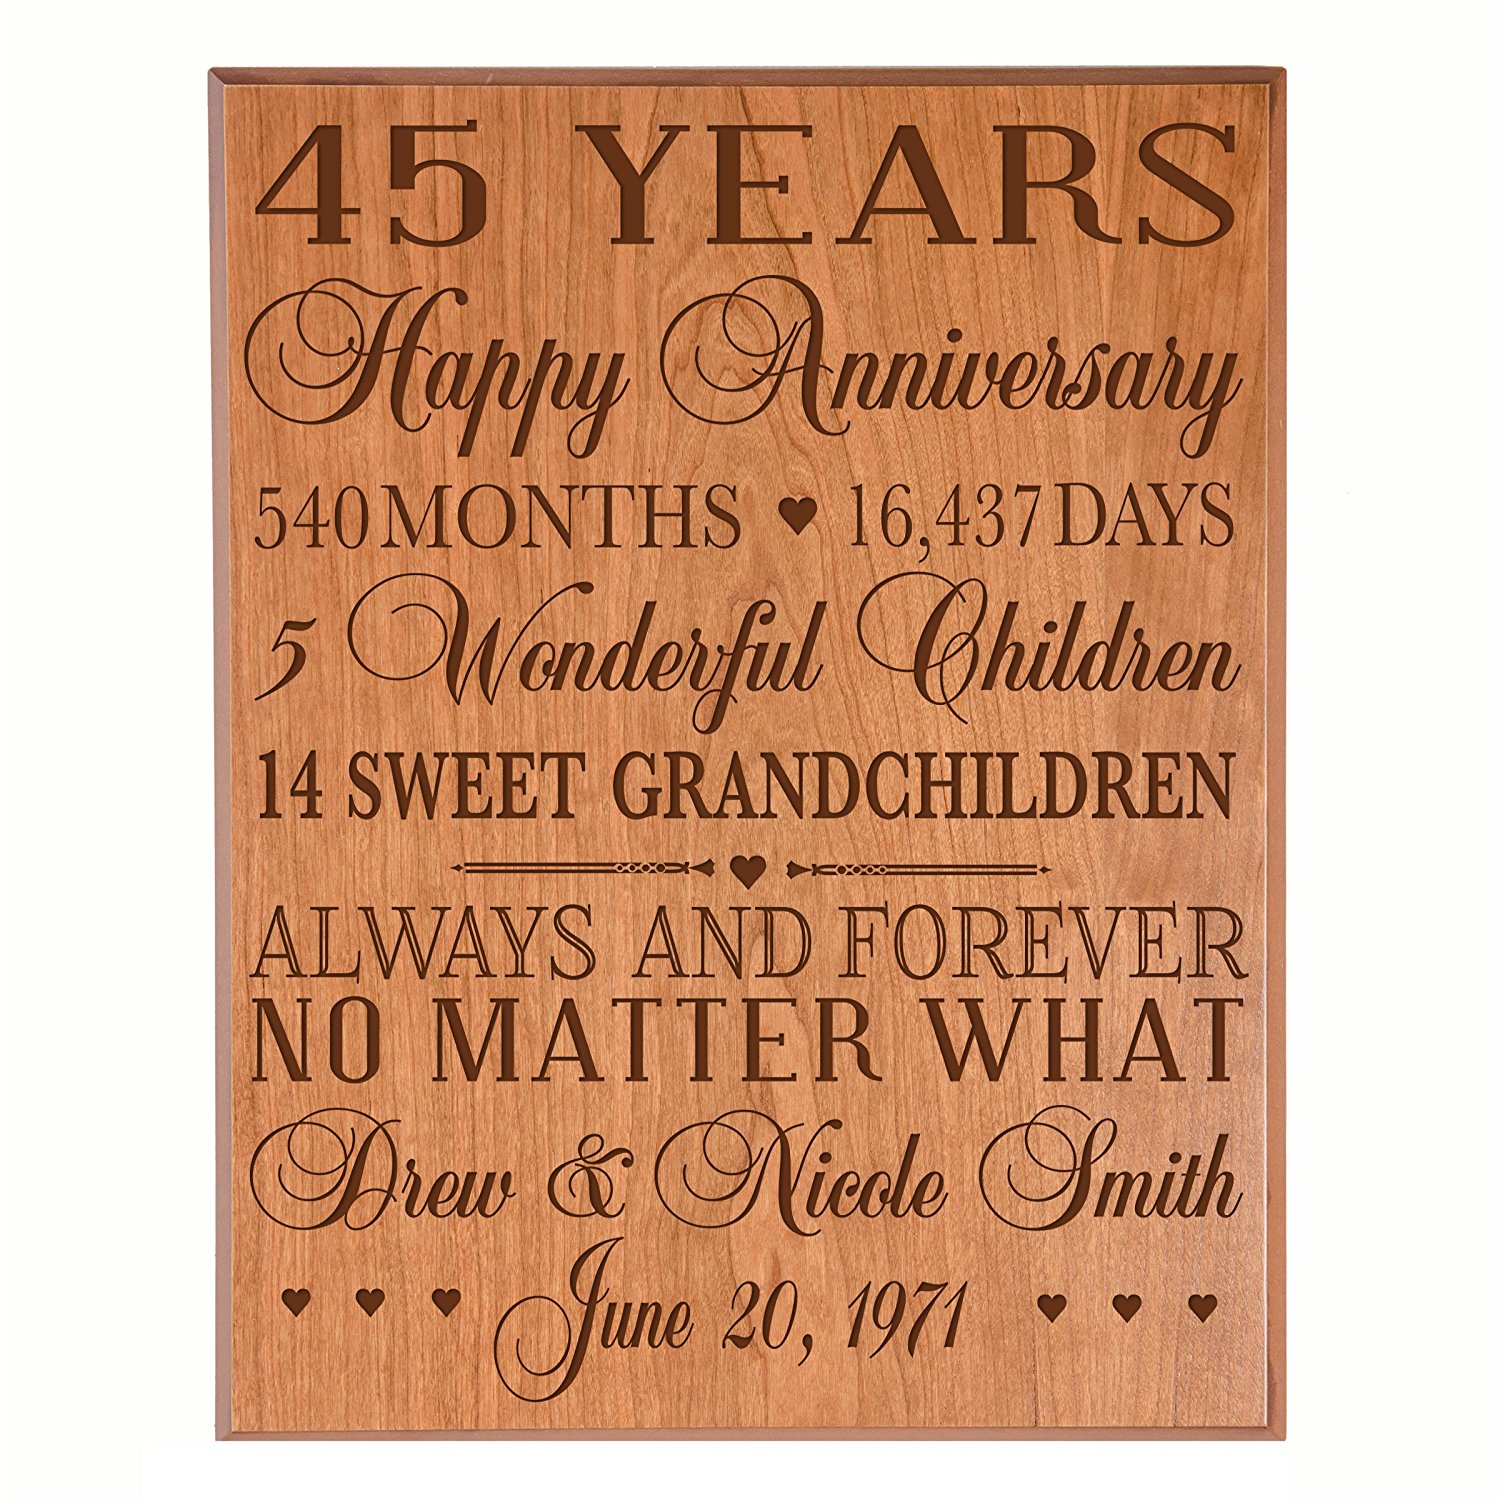 """Personalized 45th Anniversary Gifts for him her Couple parents, Custom Made 45 year Anniversary Gifts ideas Wall Plaque 12"""" x 15"""" By Dayspring Milestones (Cherry Veneer Wood)"""